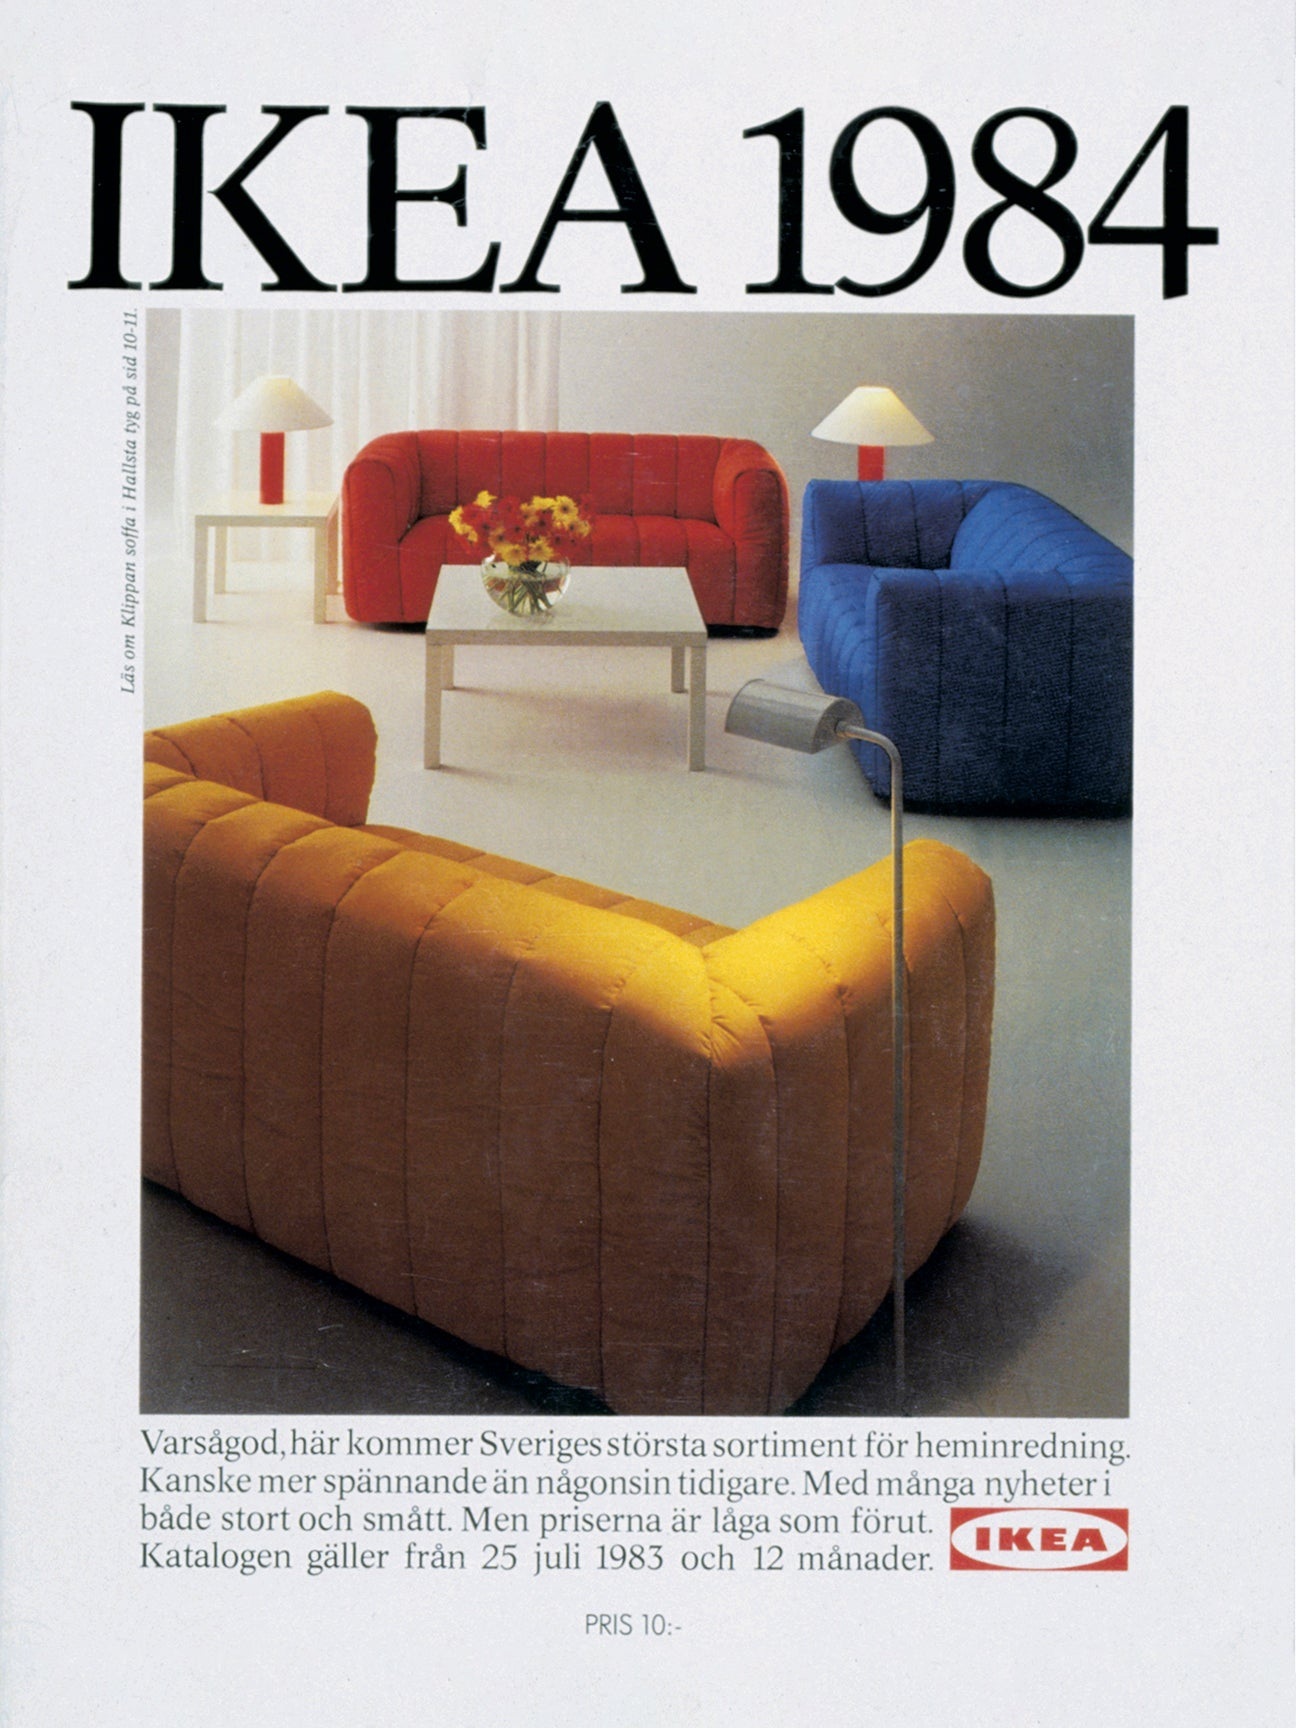 5 Retro IKEA Catalogs We're Still Pulling Inspiration From